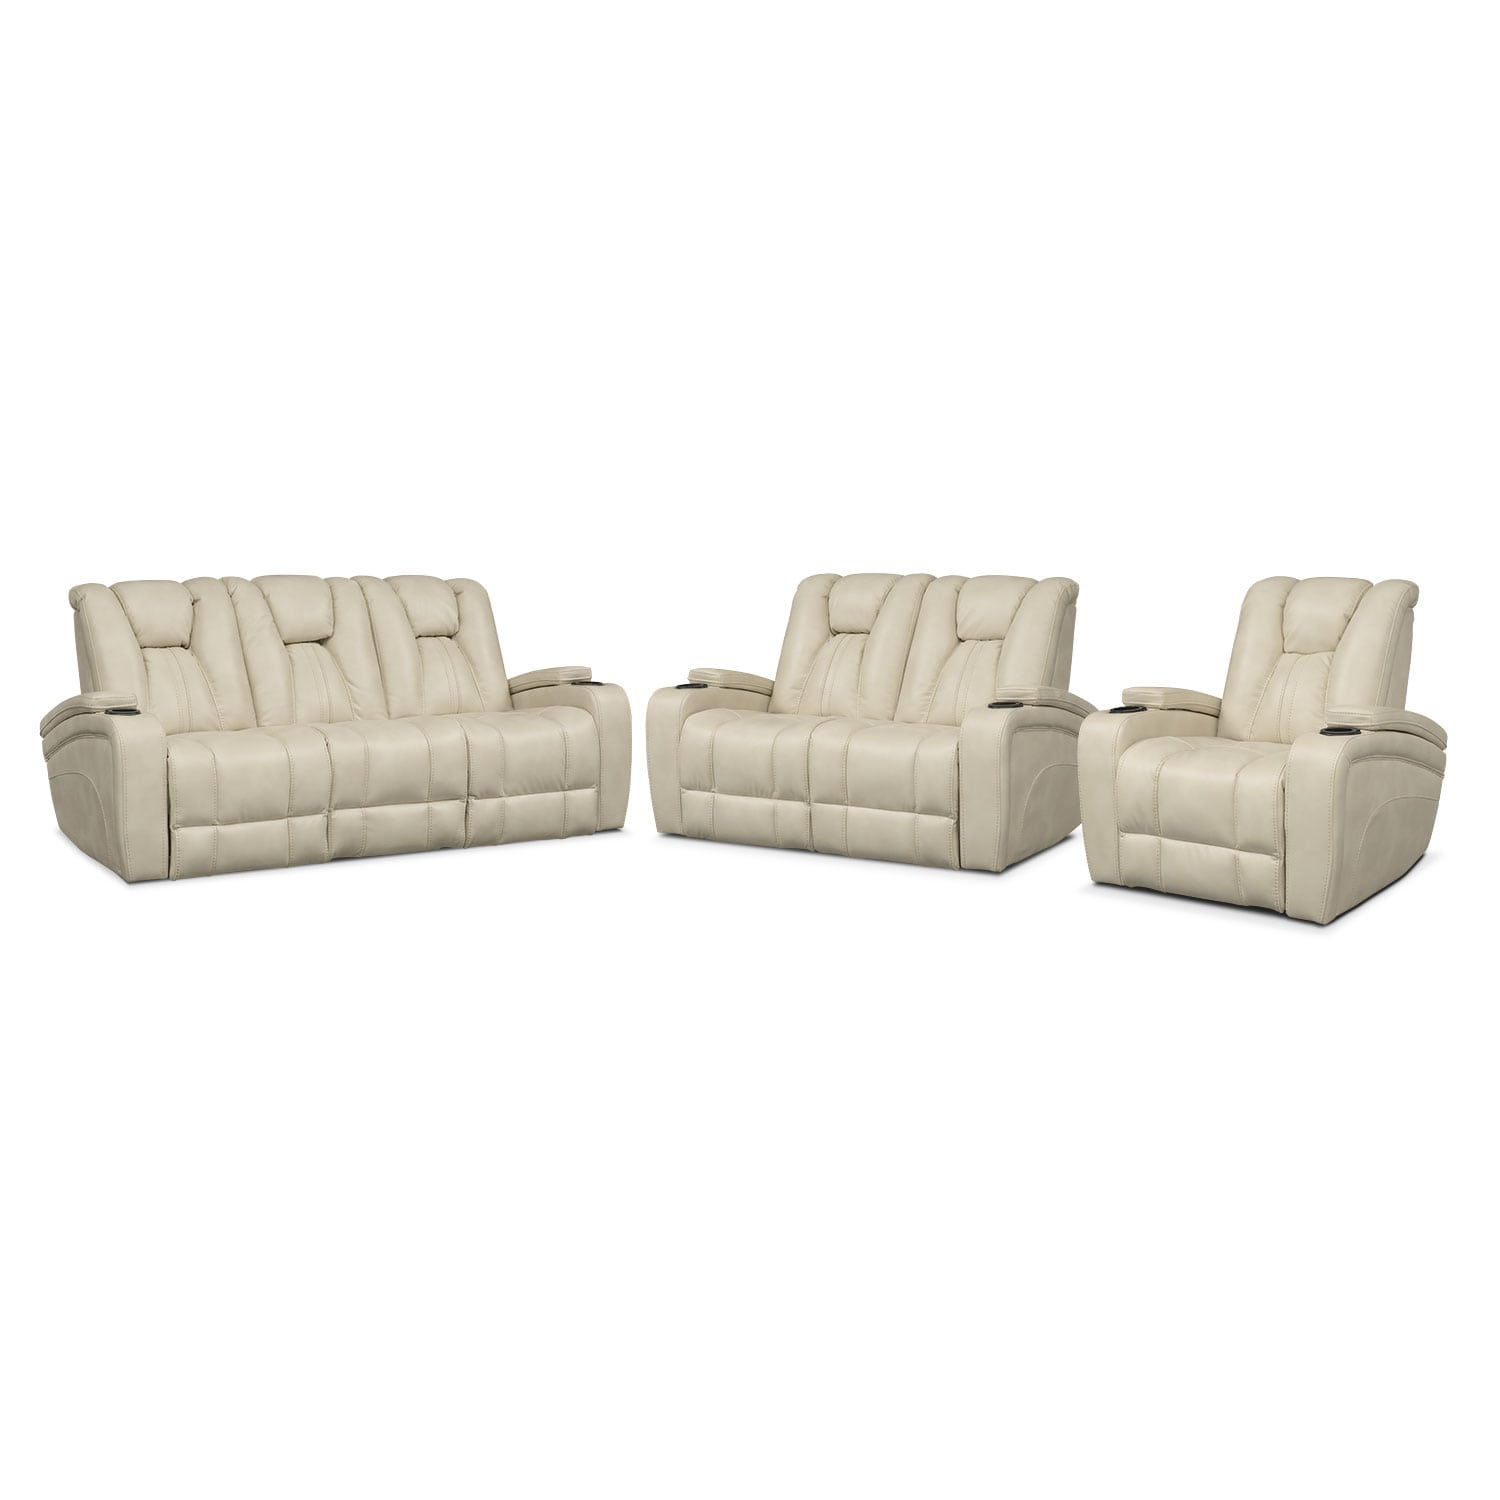 Pulsar dual power reclining sofa dual power reclining Power reclining sofas and loveseats